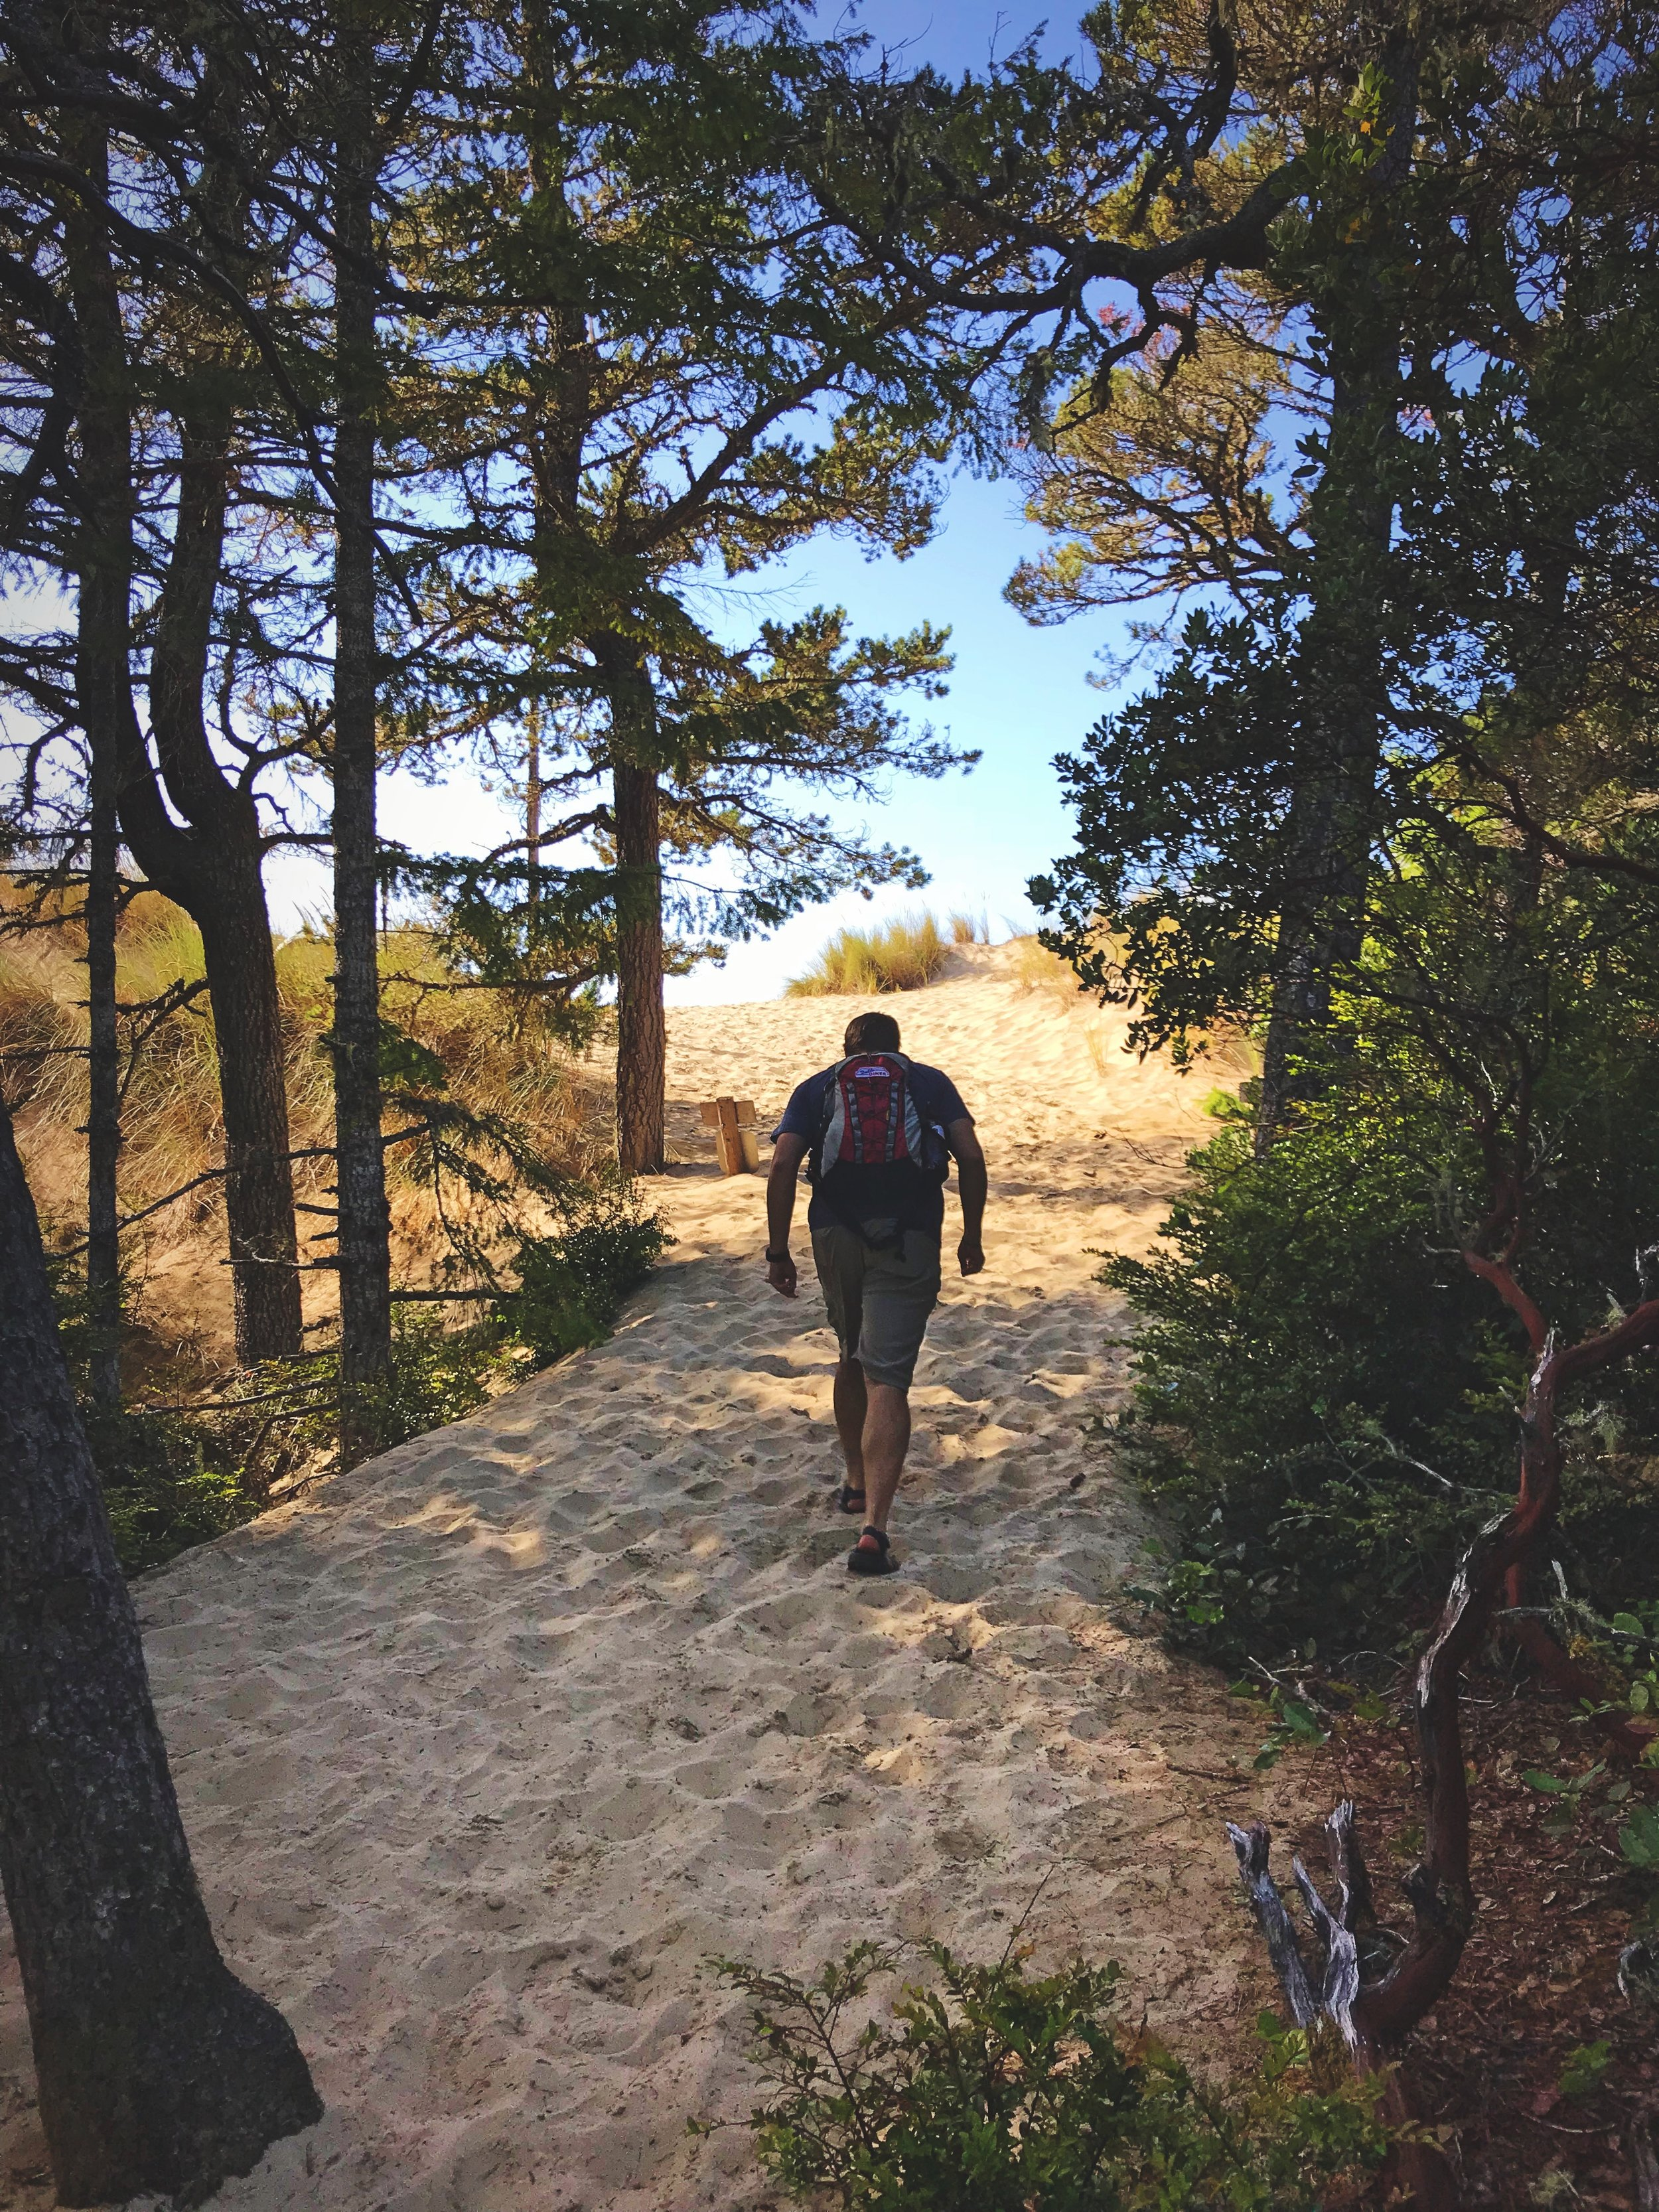 Ian walking through the trees before you arrive at the ocean.